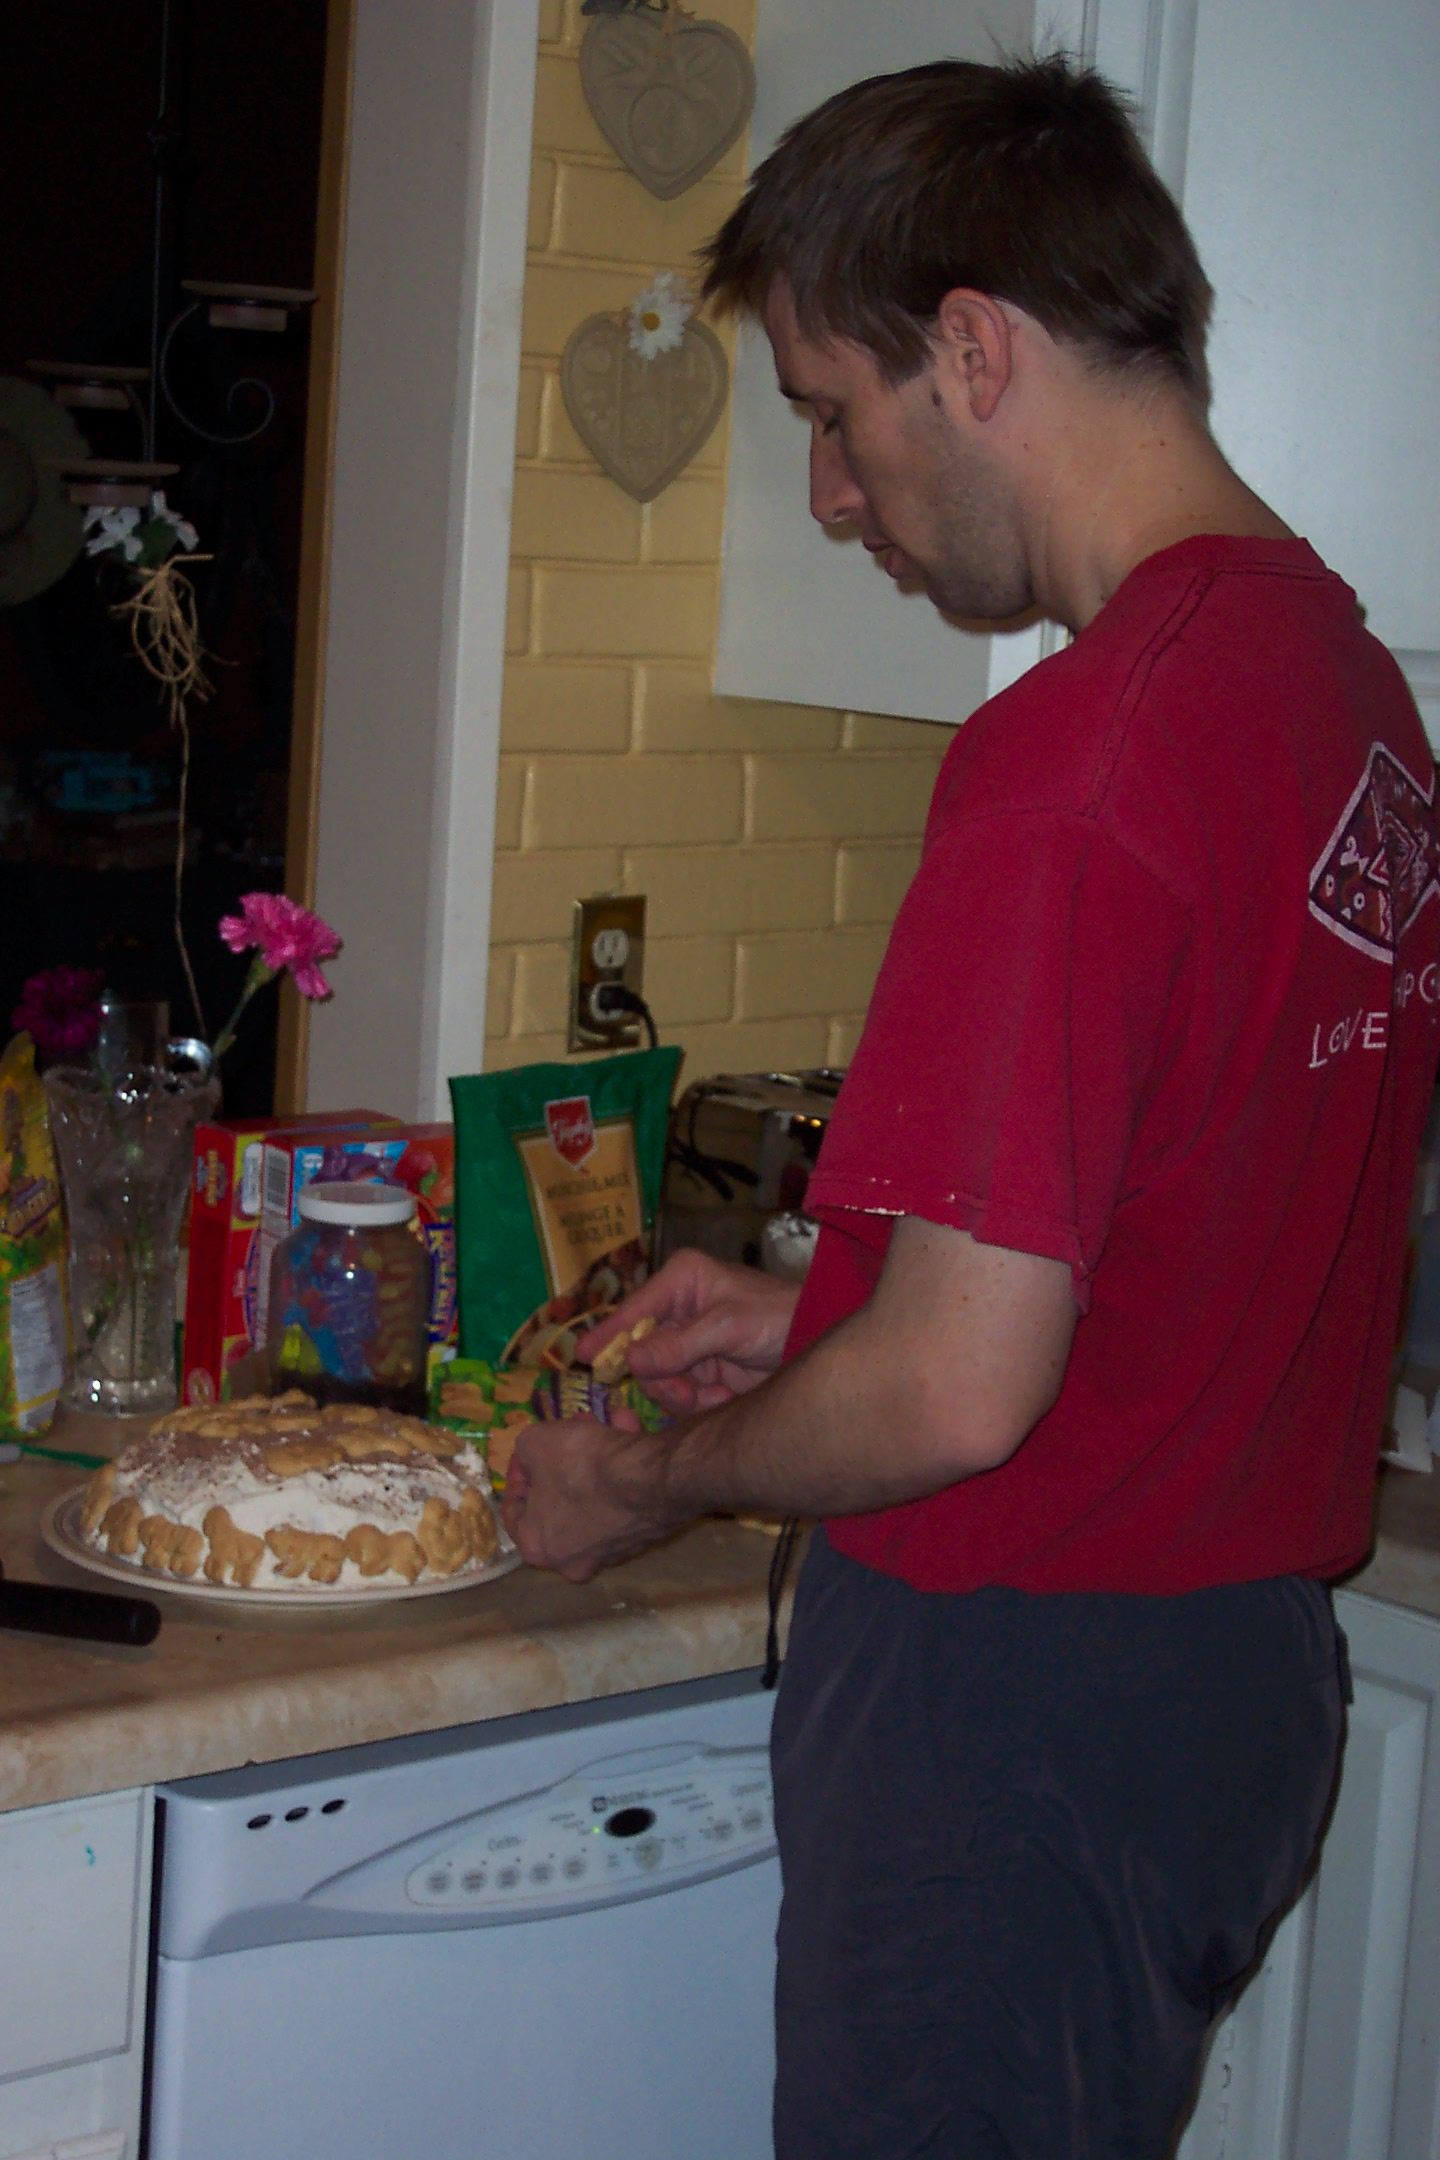 Jason decorating the cake with safari animal crackers.